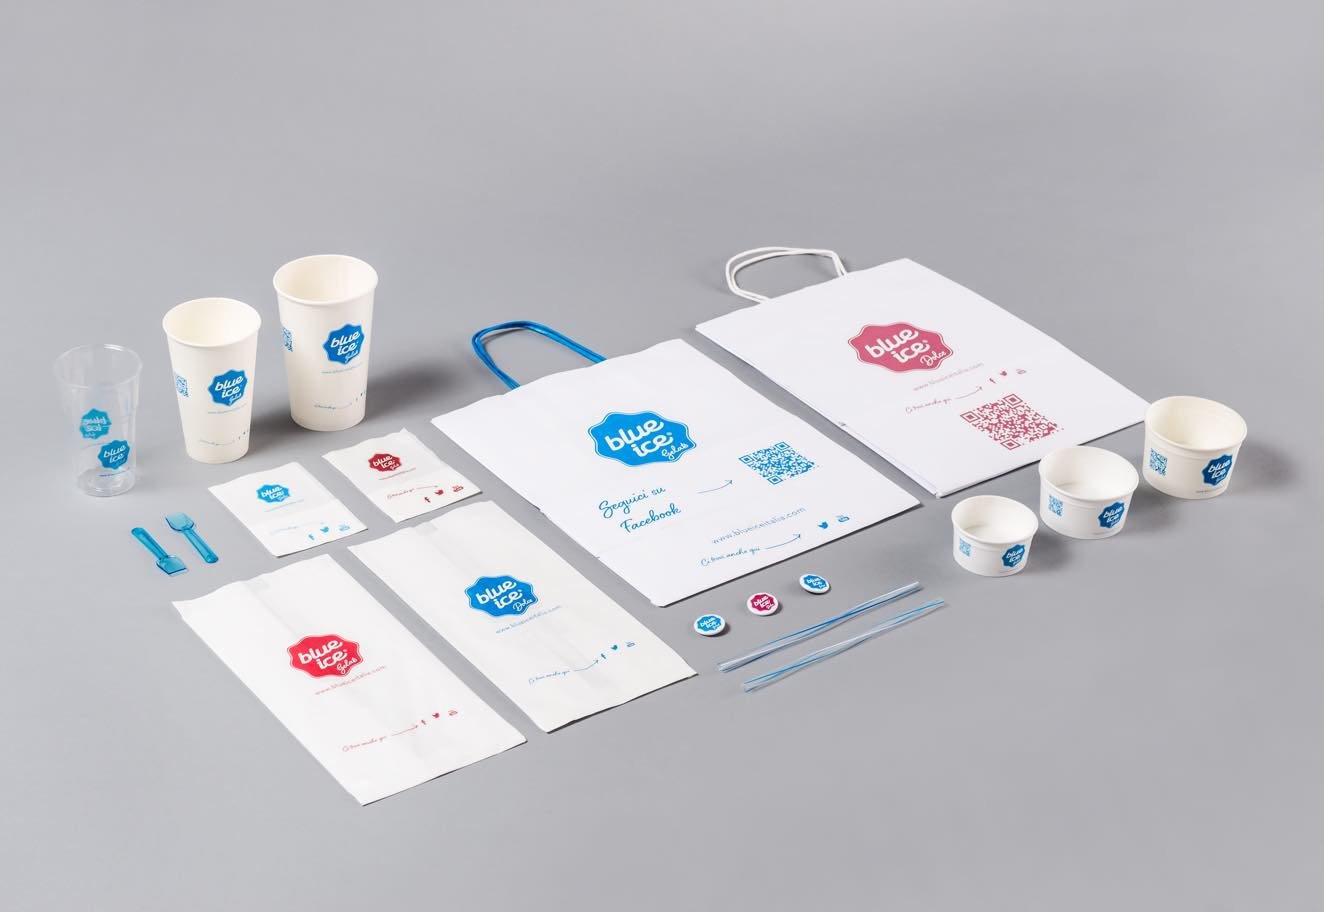 Rebranding and corporate packaging for Blue Ice – Logo design agency Luther Dsgn